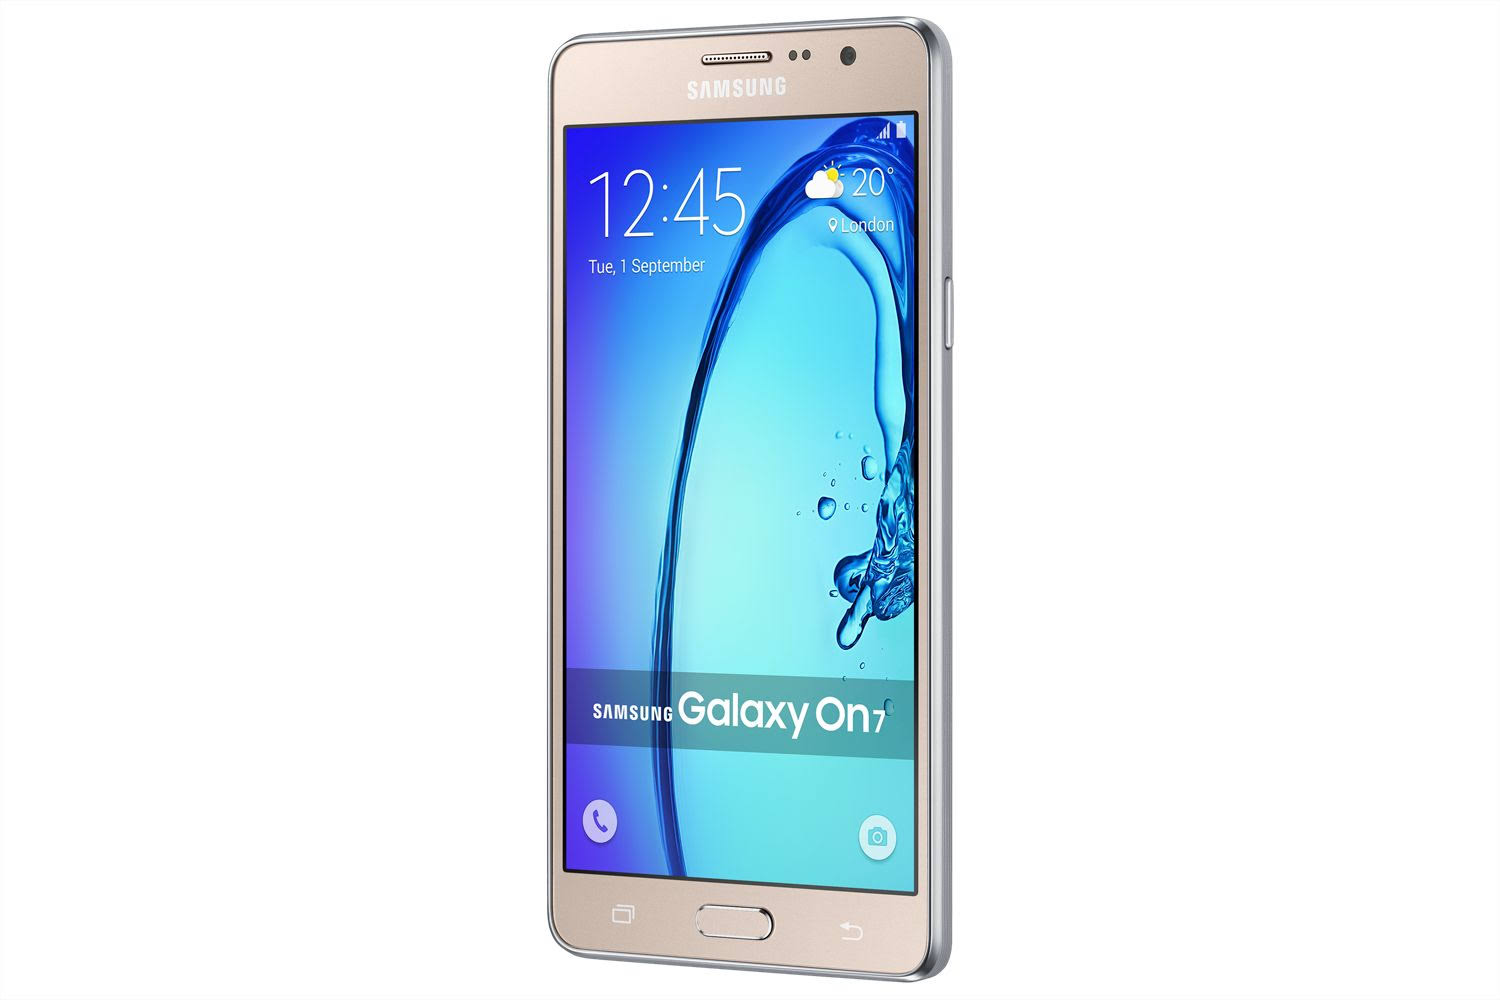 Galaxy On 7 Dourado 16 GB